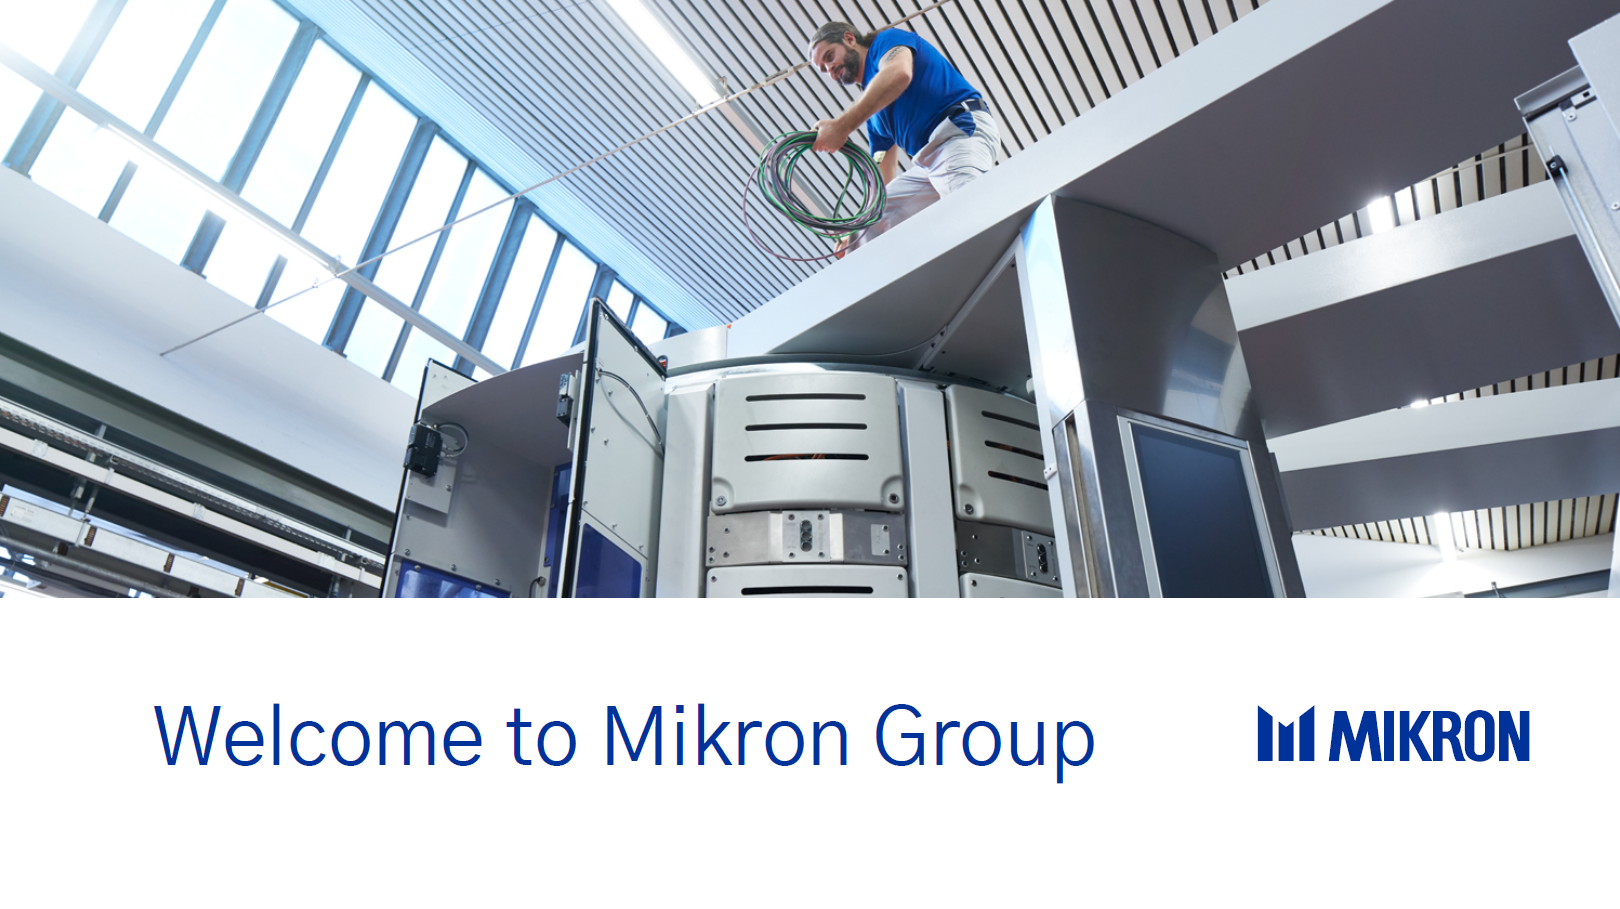 fileadmin/user_upload/01mikron_group/media/presentation-group/Mikron_GroupPresentation_190320_Title.PNG